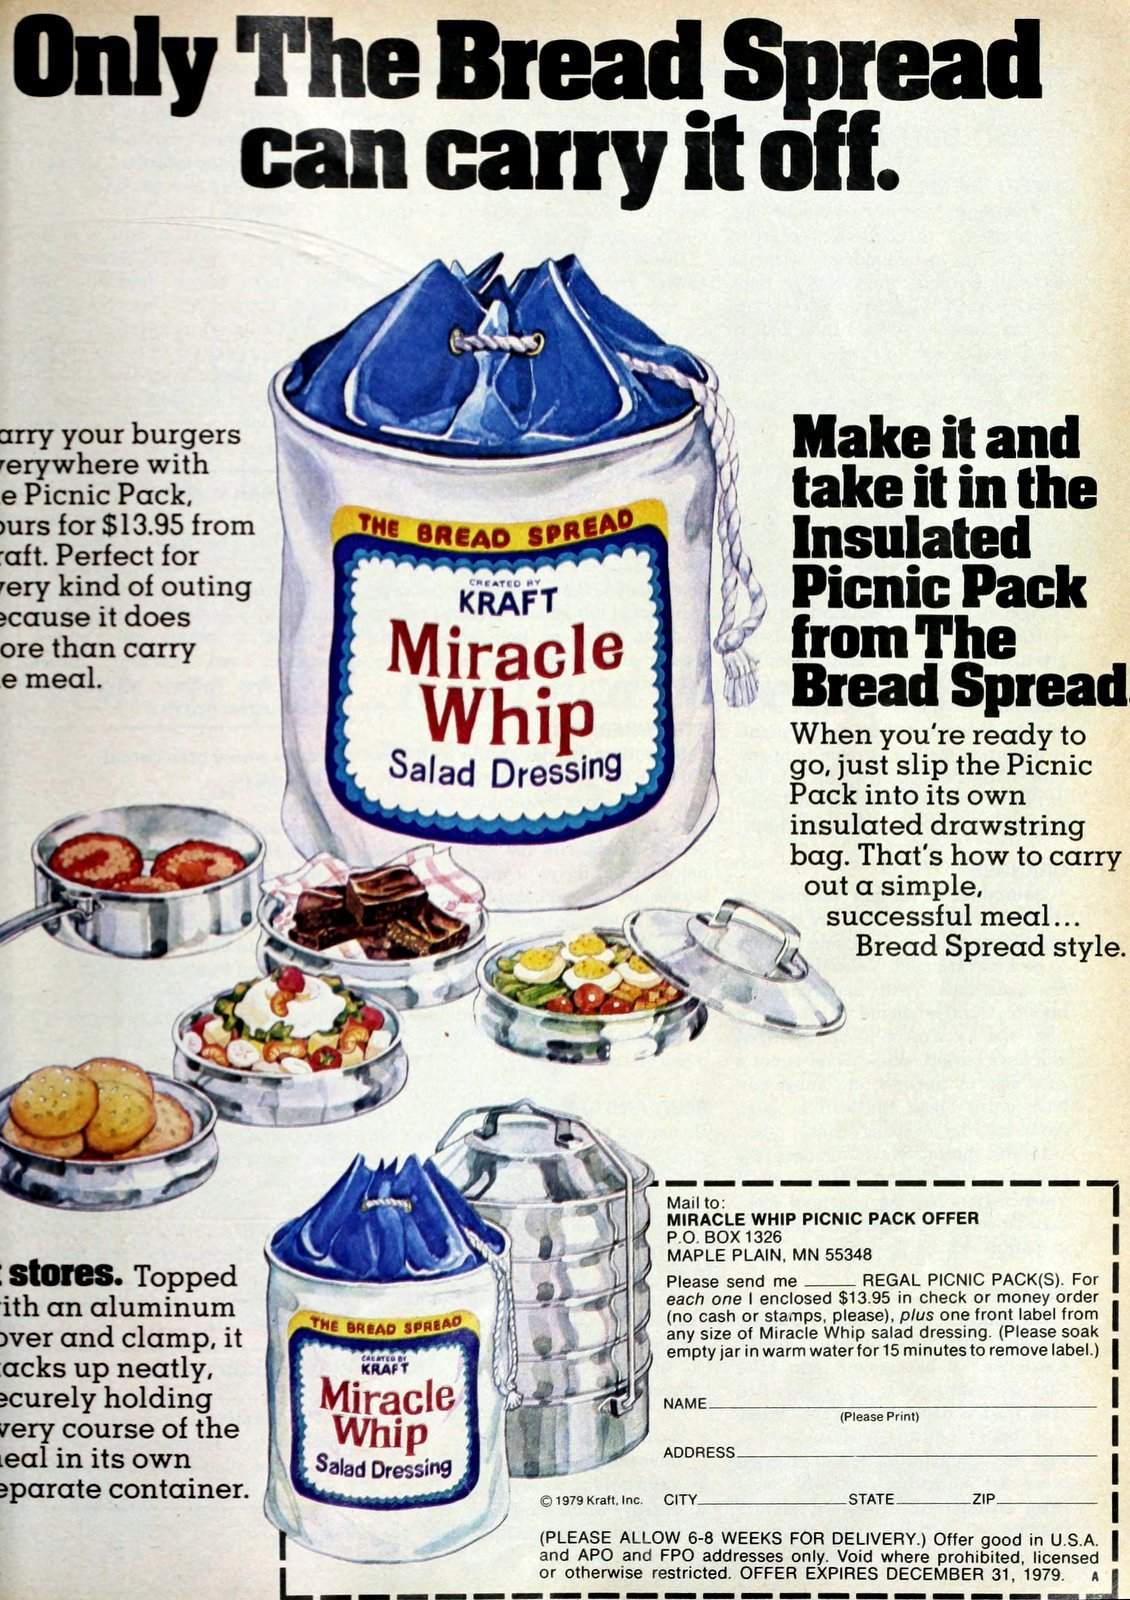 Vintage Kraft Miracle Whip insulated picnic pack drawstring tote (1979)